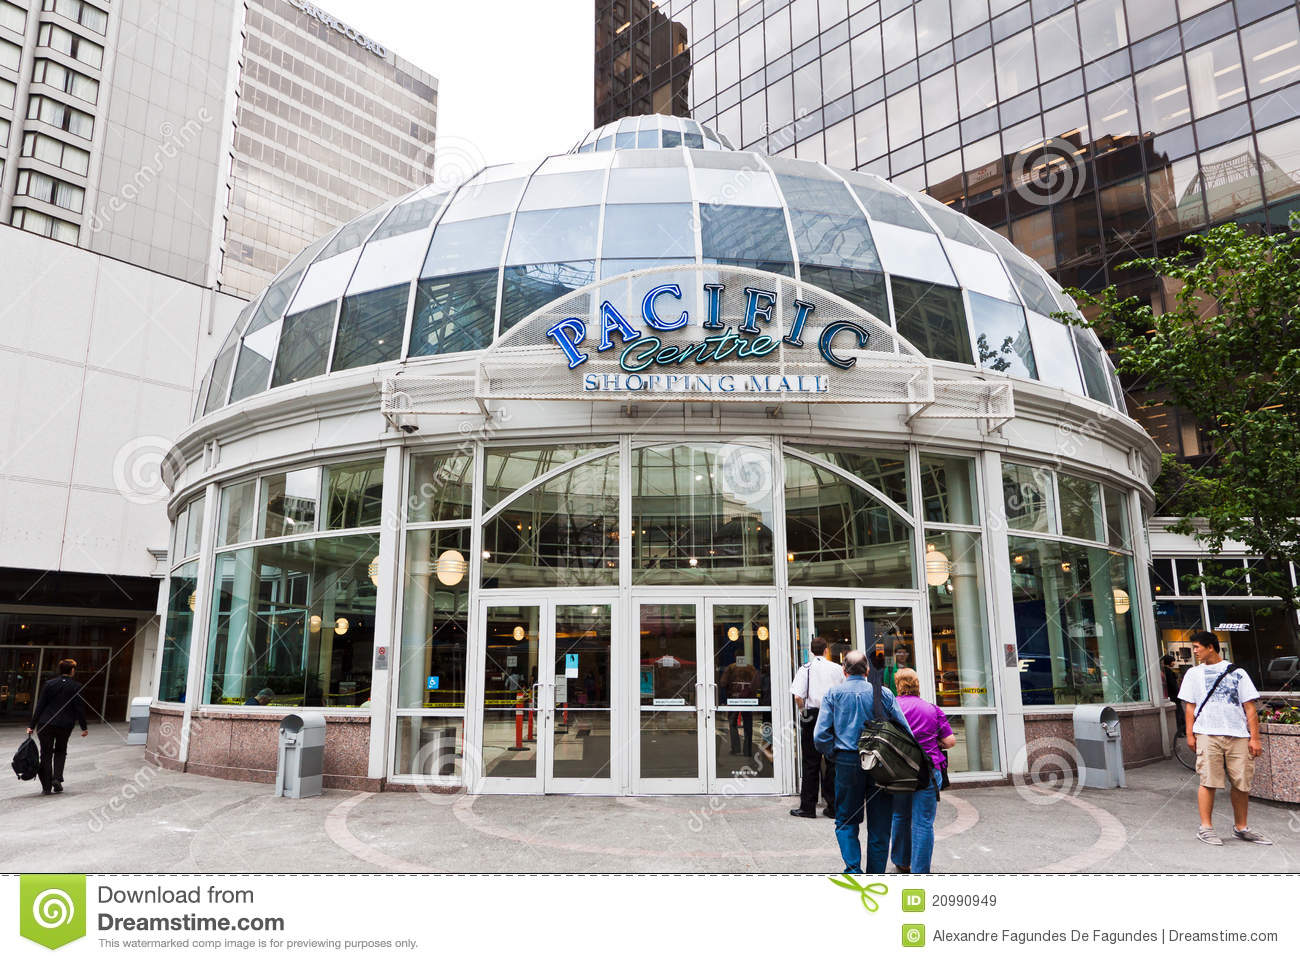 Pacific Centre is the largest fully enclosed shopping mall in the heart of downtown Vancouver, British Columbia, Canada. The mall is located adjacent to the Vancouver Art Gallery. Pacific Centre Mall's main entrance is at W Georgia Street and a new entrance at Robson and Granville Street since expansion in /5(3).